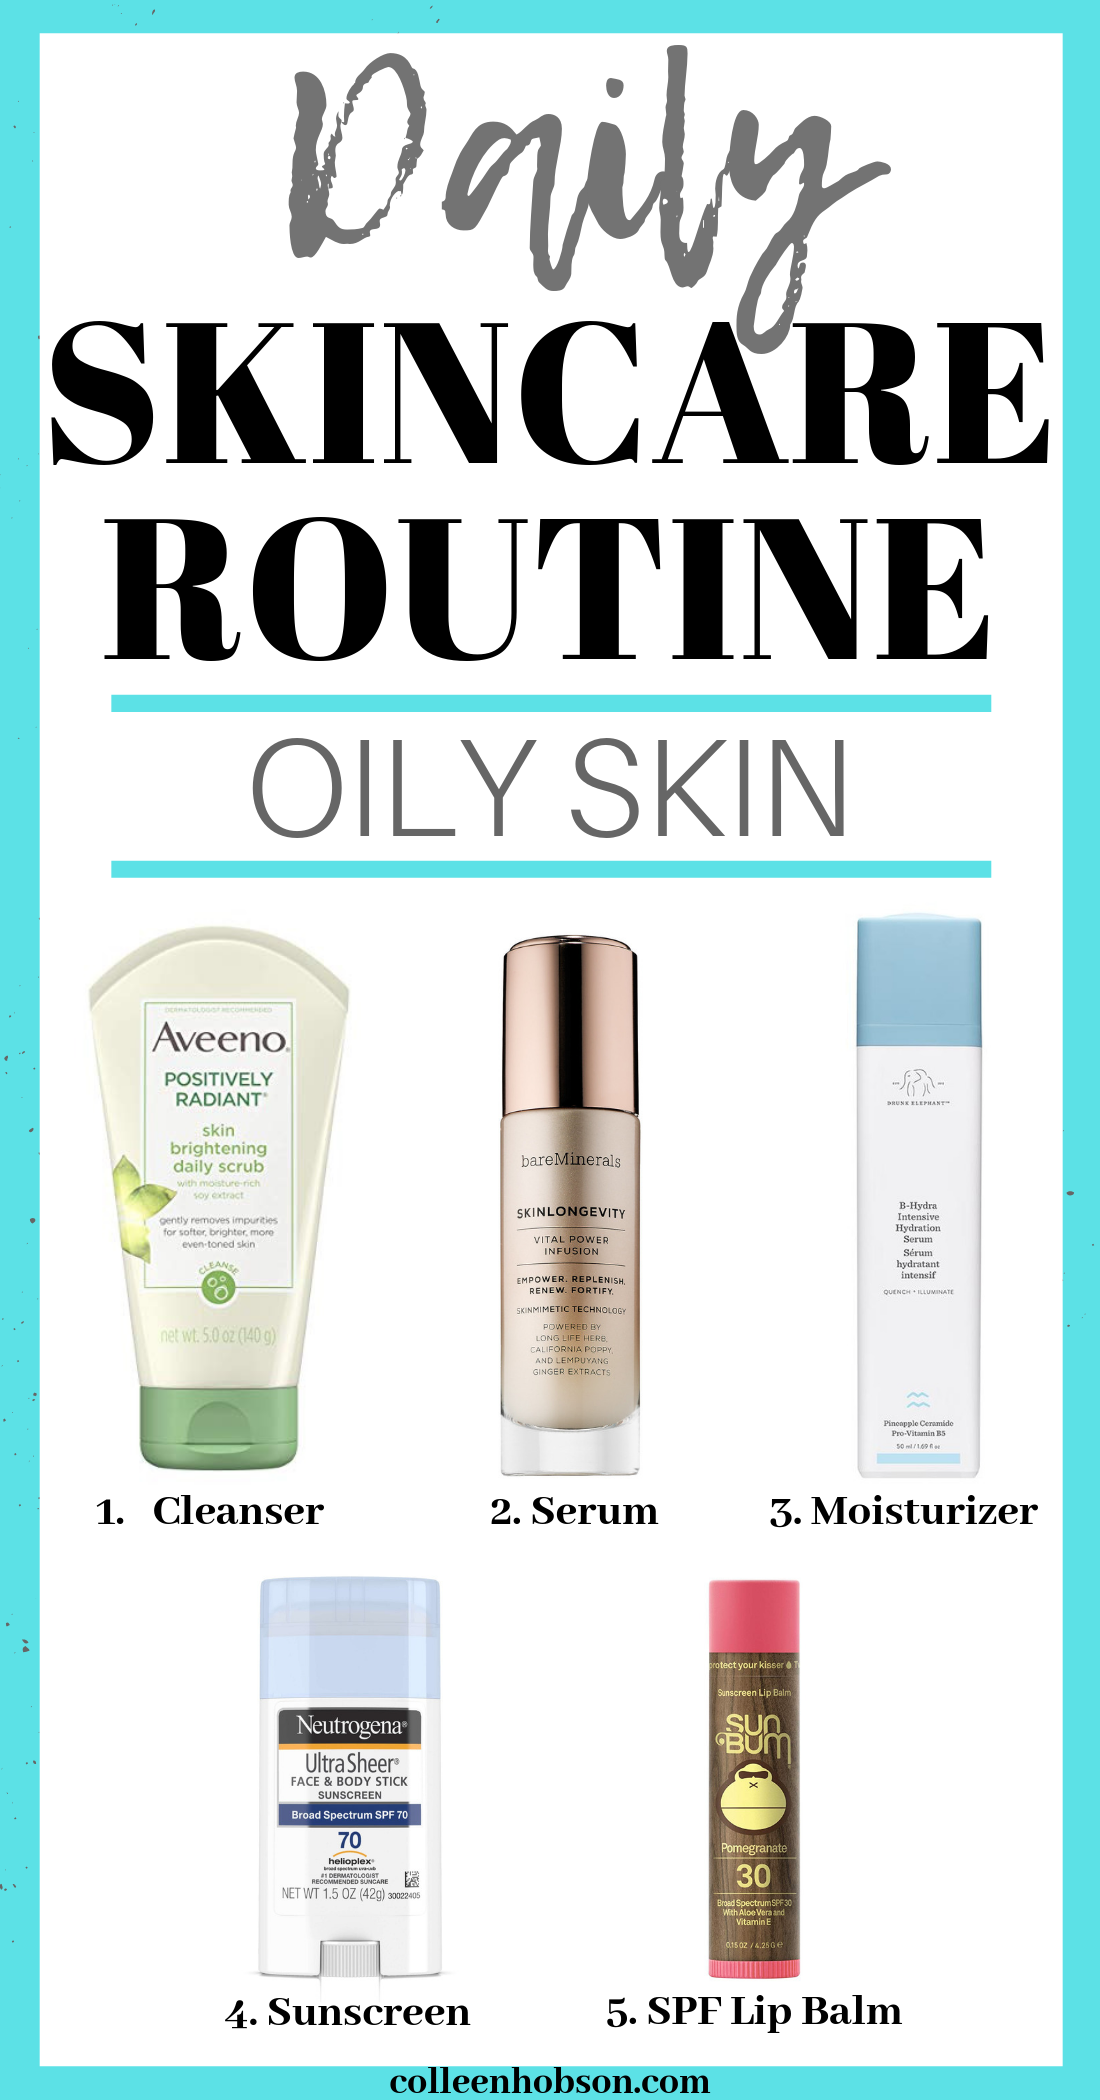 Simple And Effective 5 Step Daily Skincare Routine For Oily Skin Best Skincare Routine Oily Sk Oily Skin Care Affordable Skin Care Oily Skin Care Routine